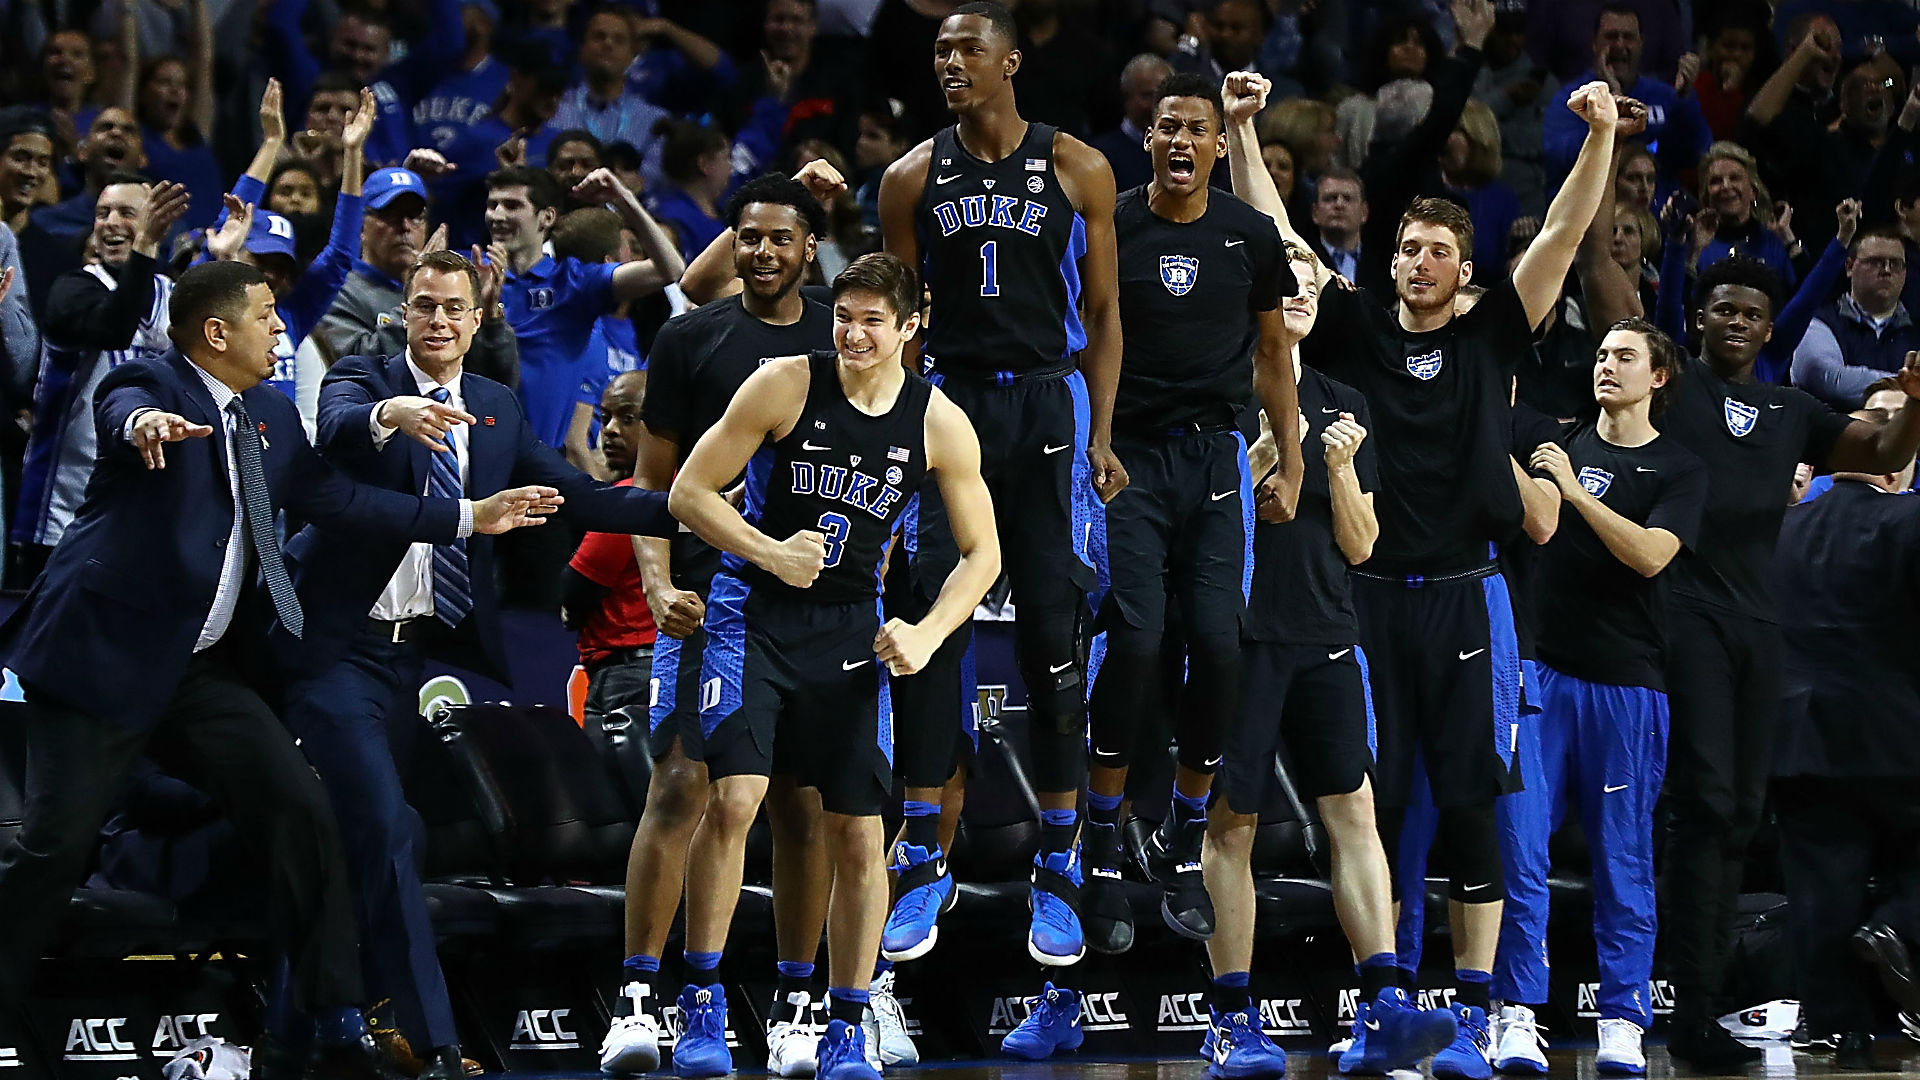 NCAA Tournament, bracketology and importance of finding Cinderella: Crowquill